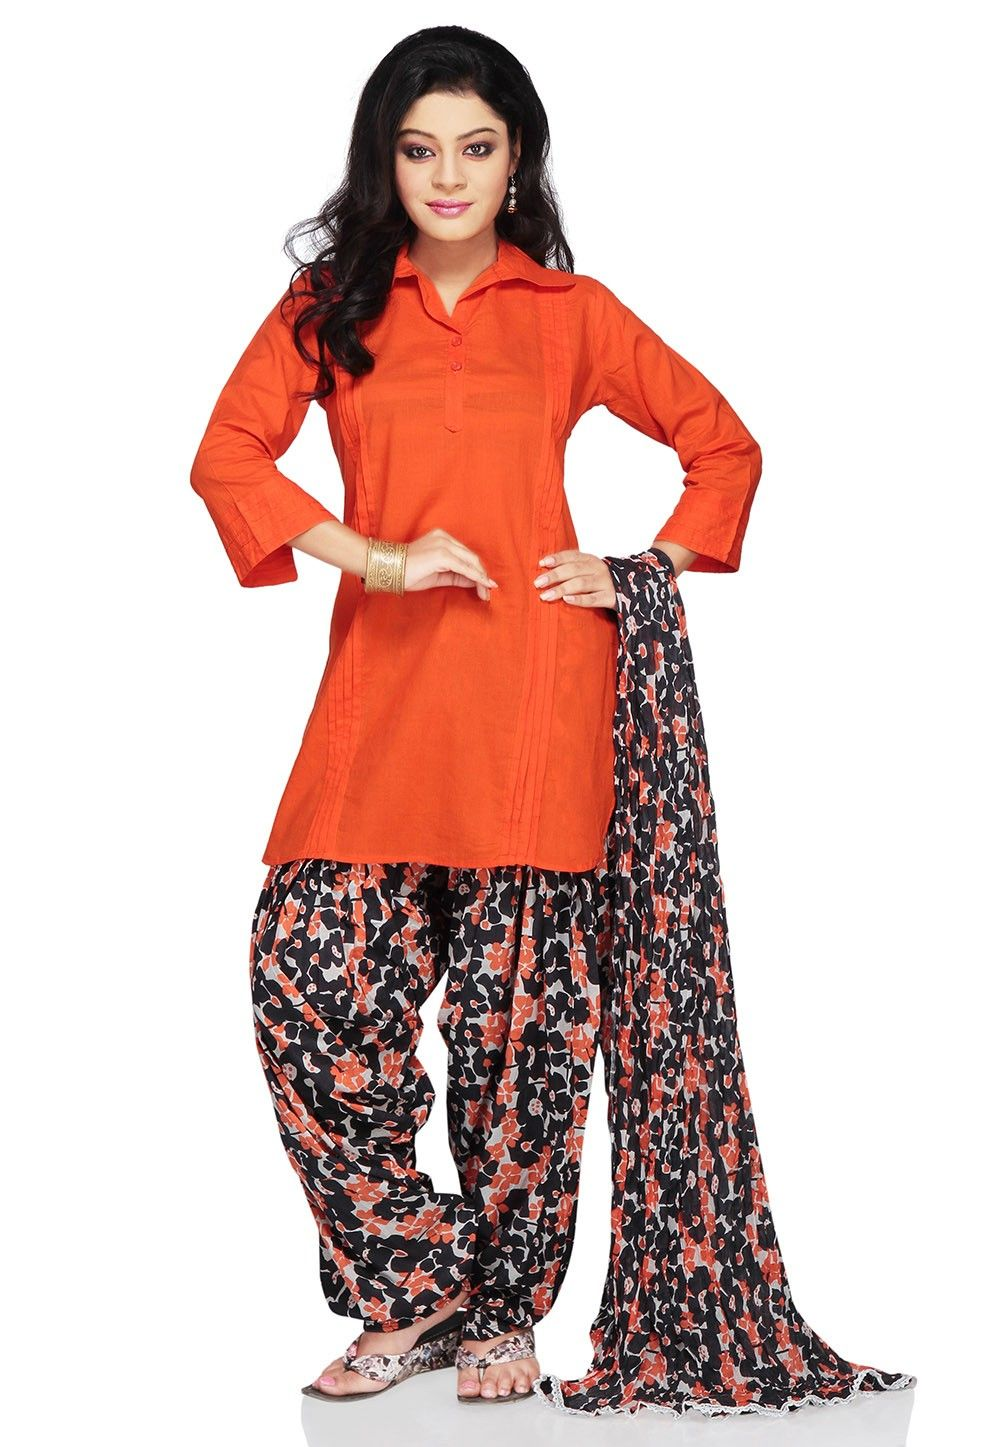 Tucked Cotton Punjabi Suit In Orange